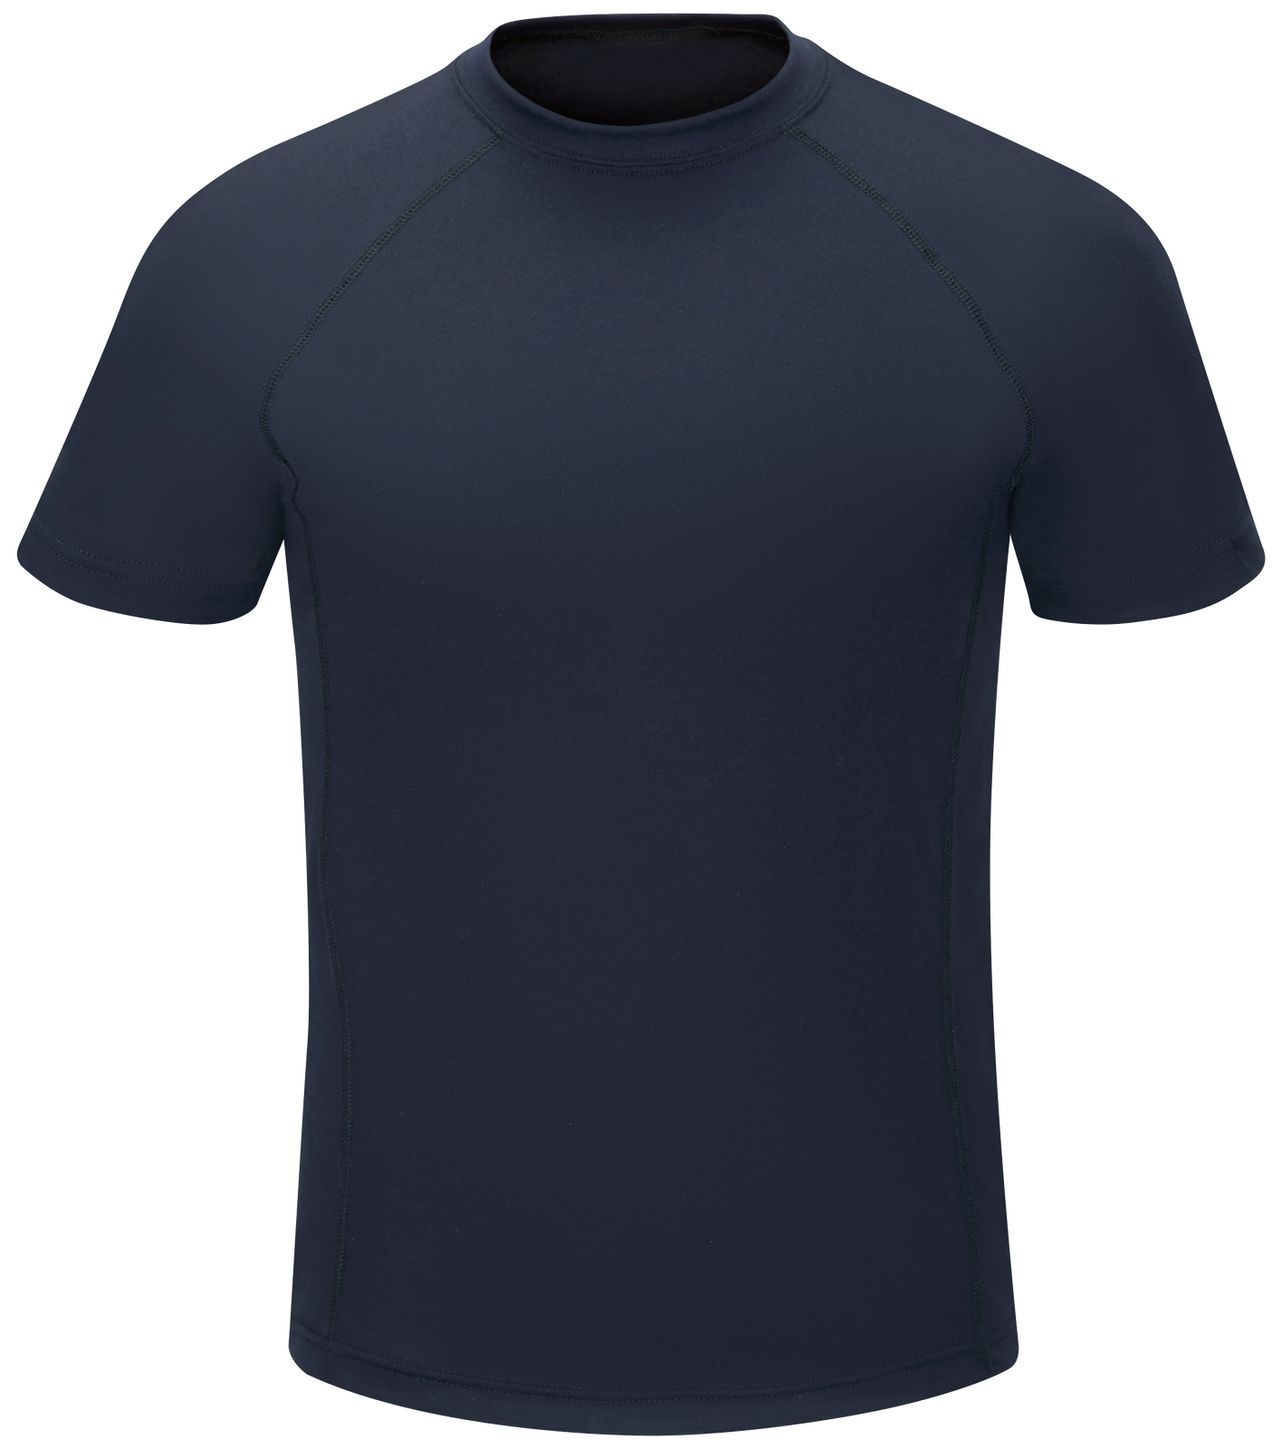 bulwark-fr-station-wear-tee-ft36-base-layer-athletic-style-navy-front.jpg